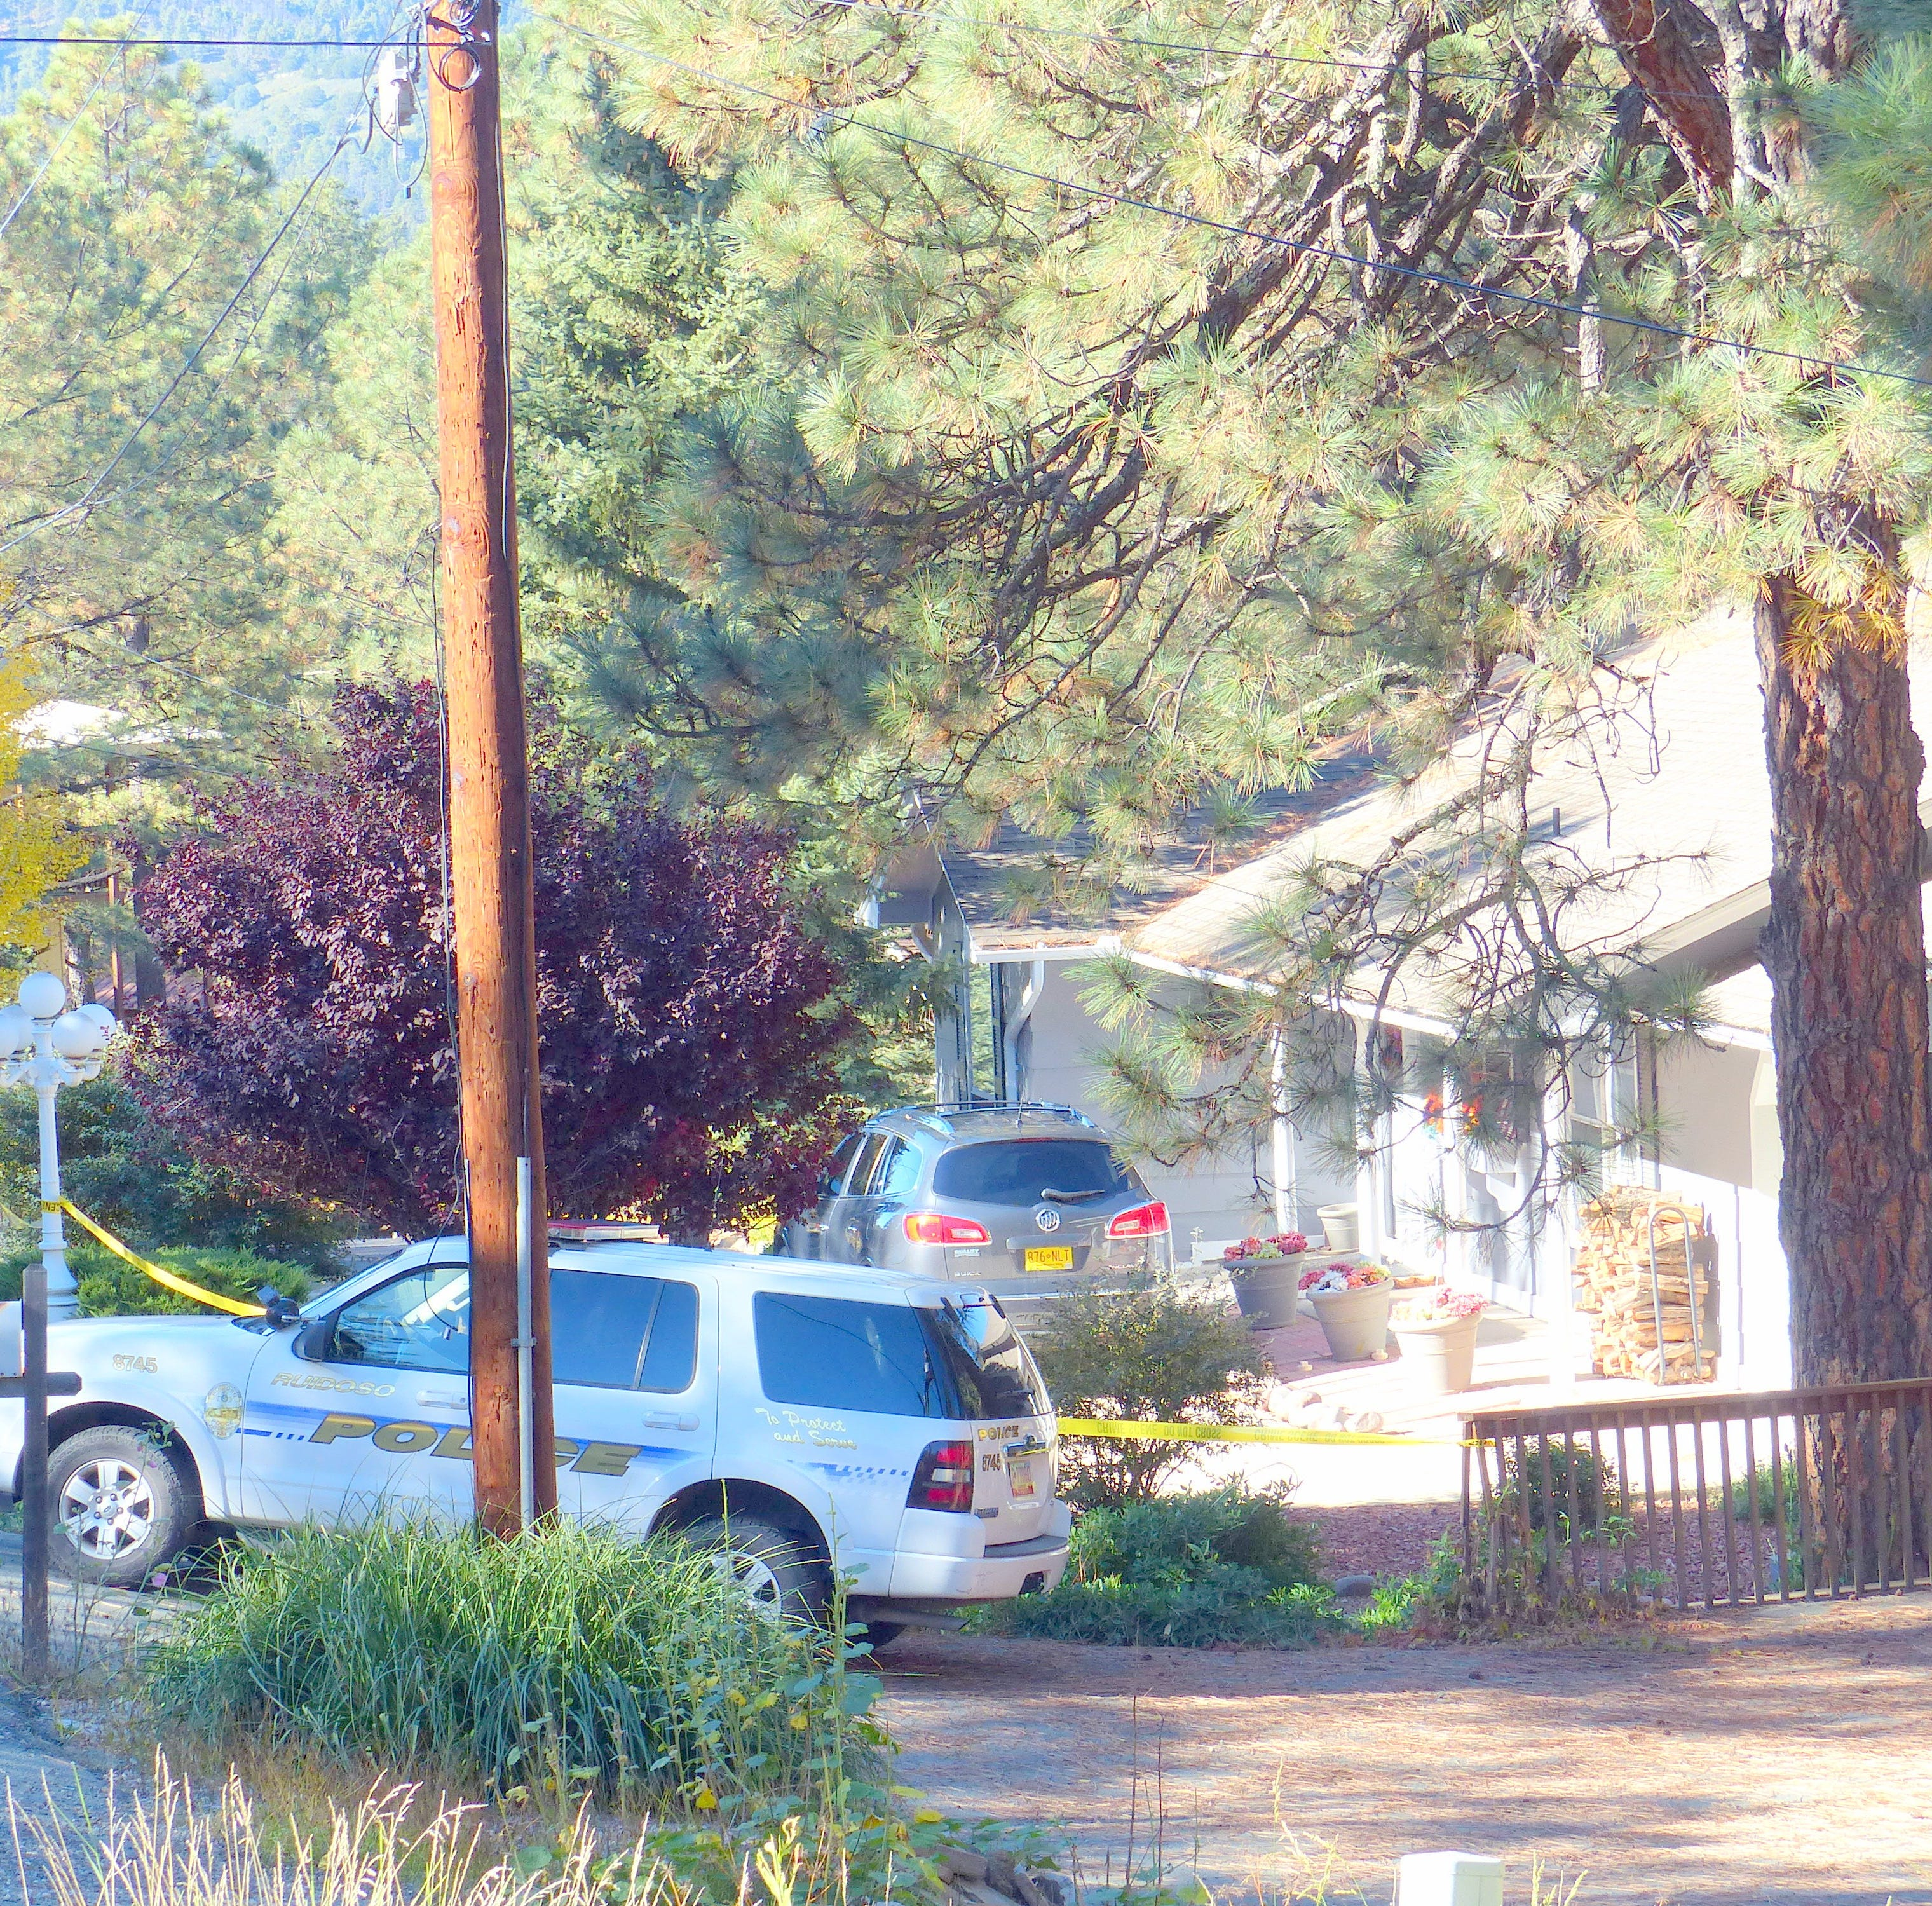 A police patrol car was stationed outside the home on Country Club Drive.